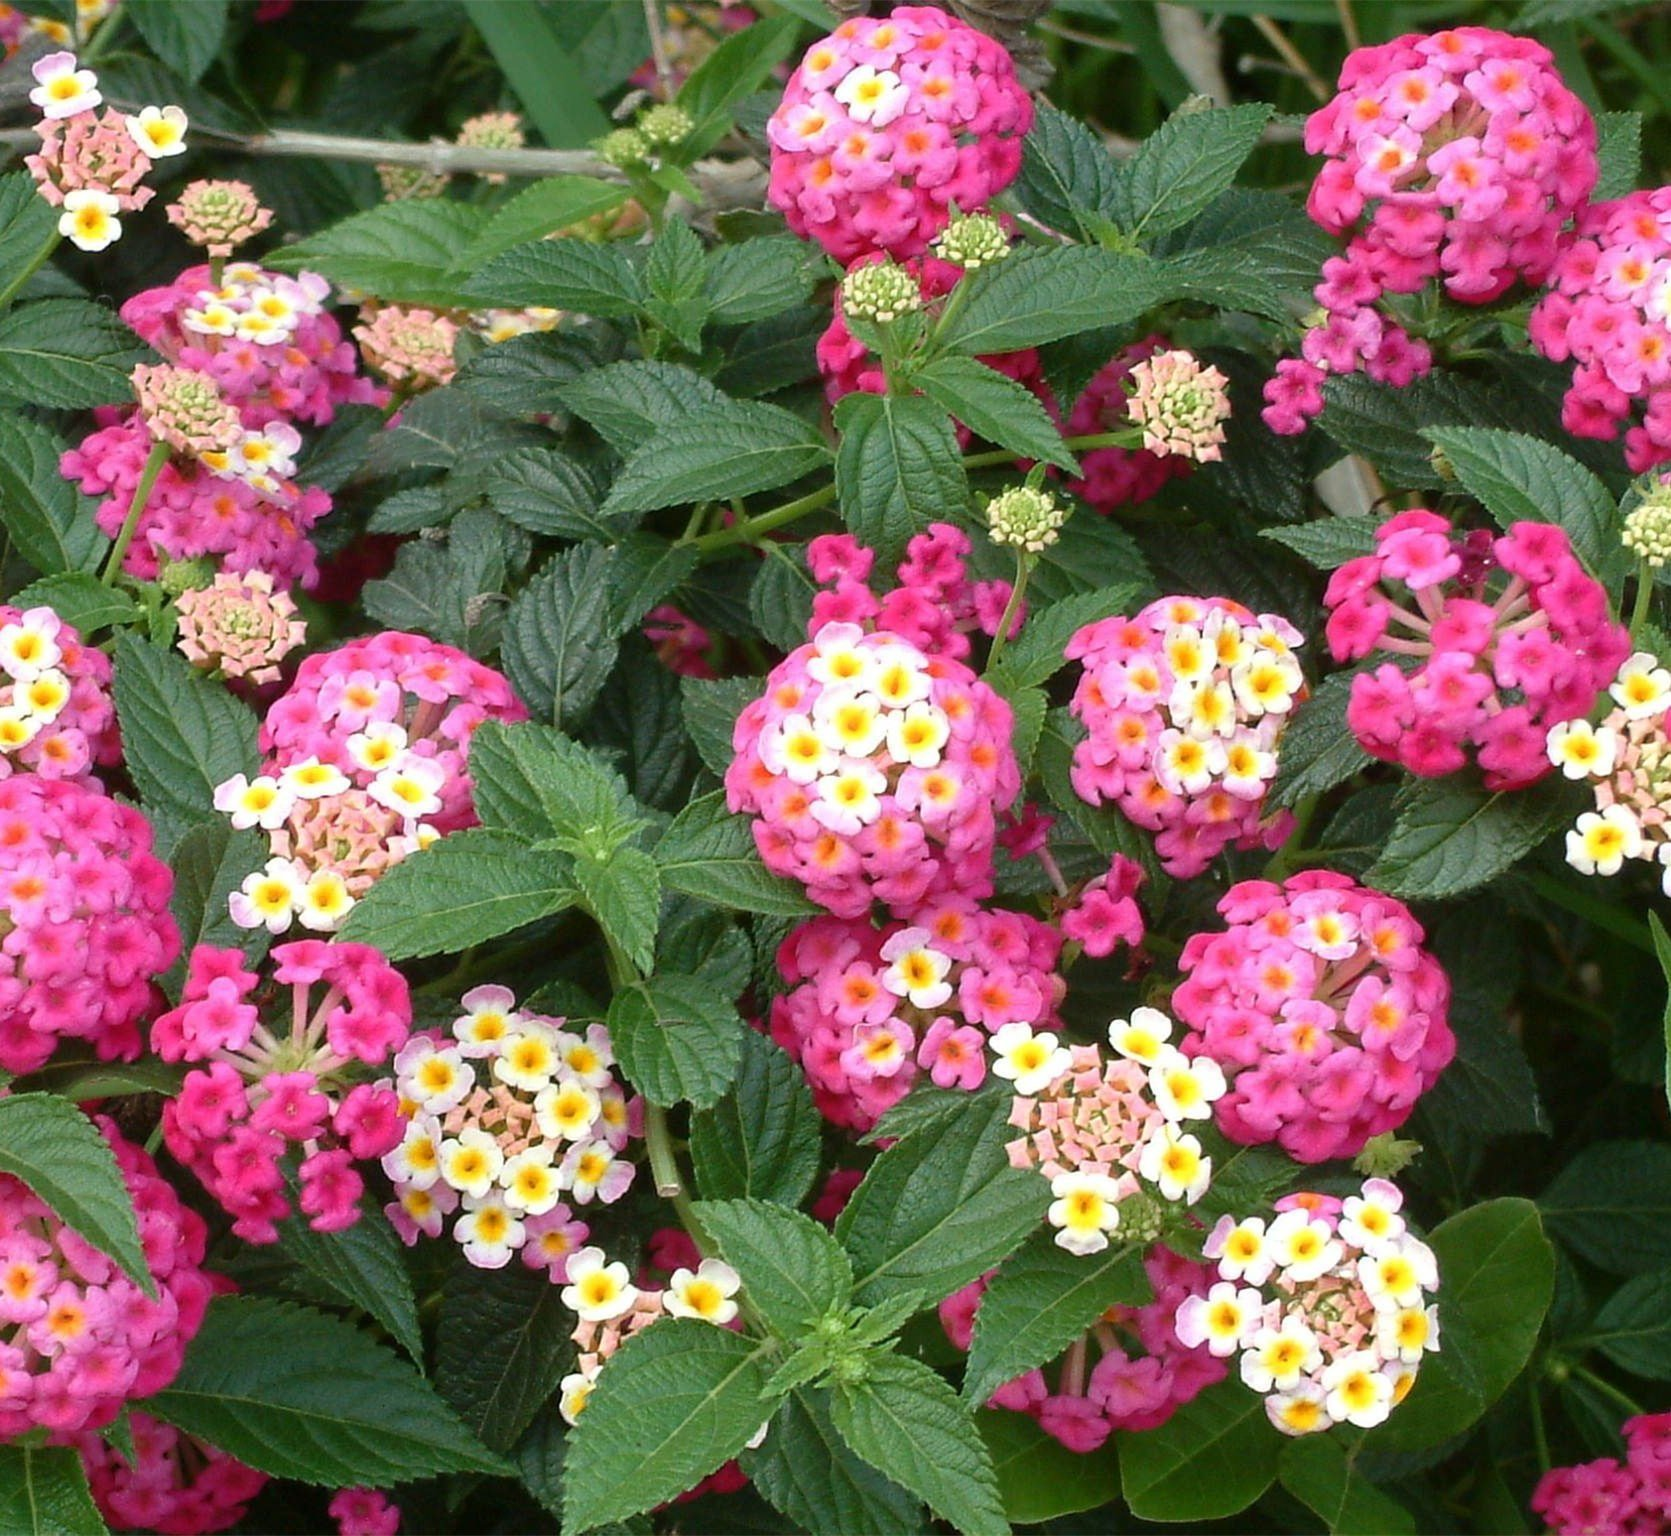 30 Beautiful Colorful Lantana Camara Flower Seeds Buy Online In Barbados Missing Category Value Products In Barbados See Prices Reviews And Free Delivery Over Bds 150 Desertcart